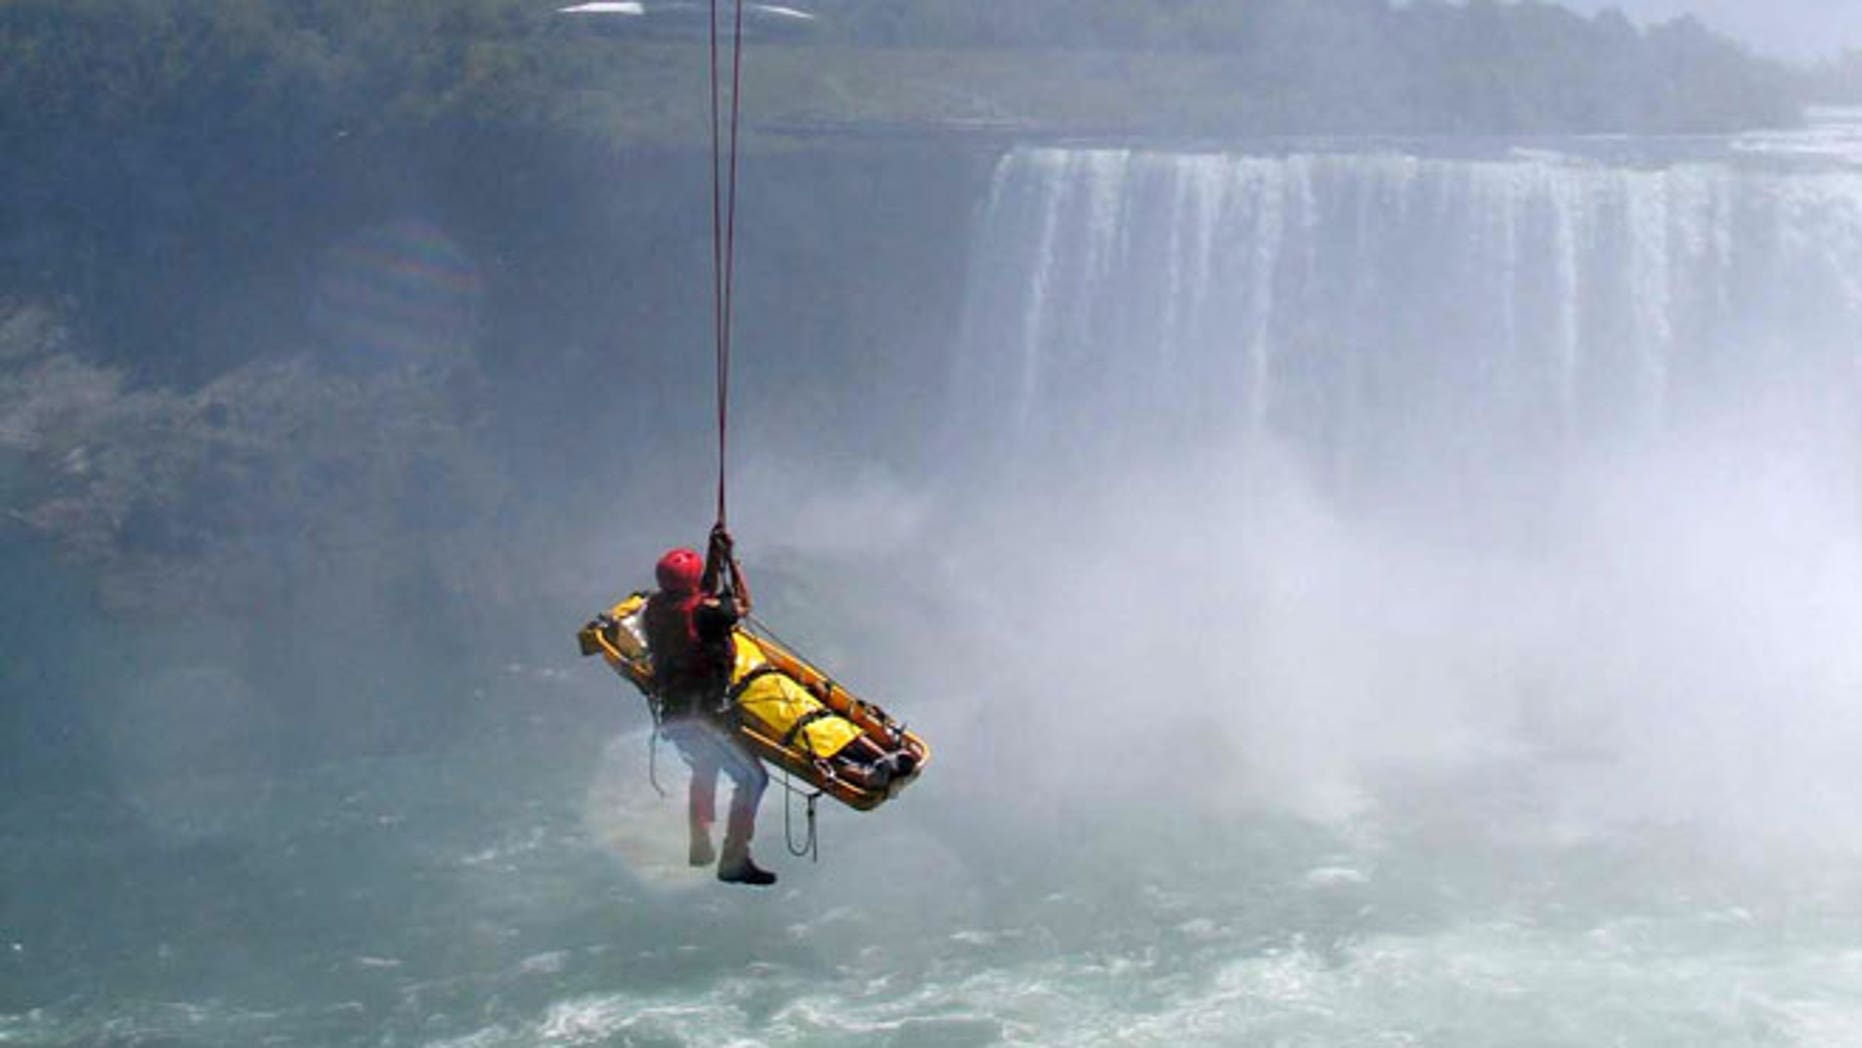 May 21, 2012: In this photo provided by Jared Fisk, Niagara Falls emergency officials rescue a man who plunged over Niagara Falls and survived in an apparent suicide attempt.